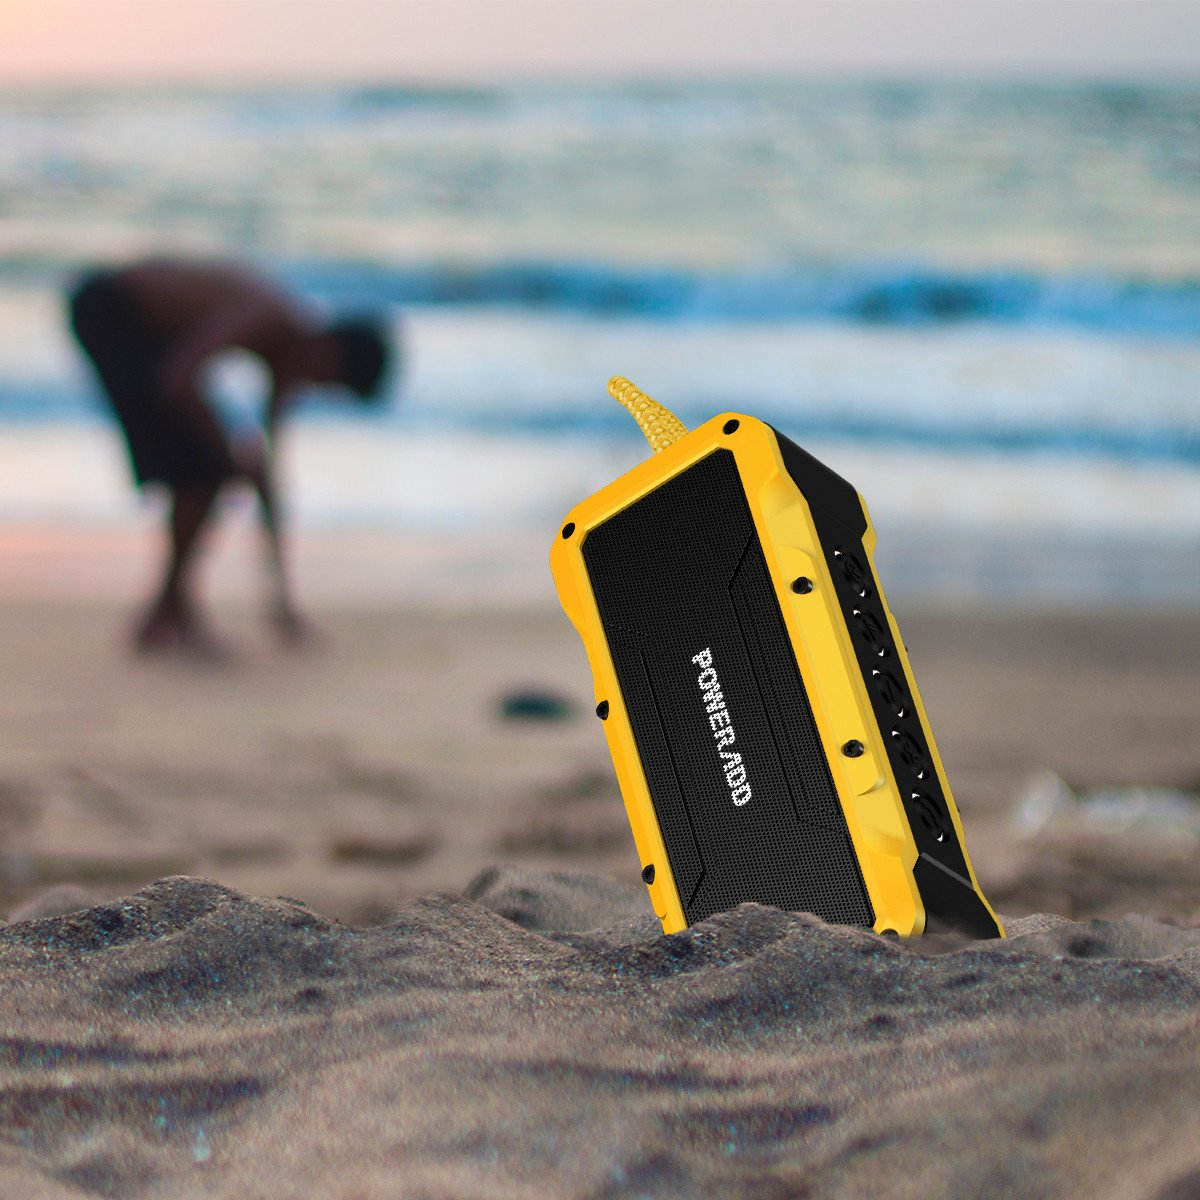 Poweradd MusicFly Outdoor Portable Bluetooth Speaker, 36W Speakers,Loud Volume,Dynamic Stereo,HD Sound, IPX7 Waterproof, Sandproof, Shockproof,Built in Mic,USB Charging Port, Yellow